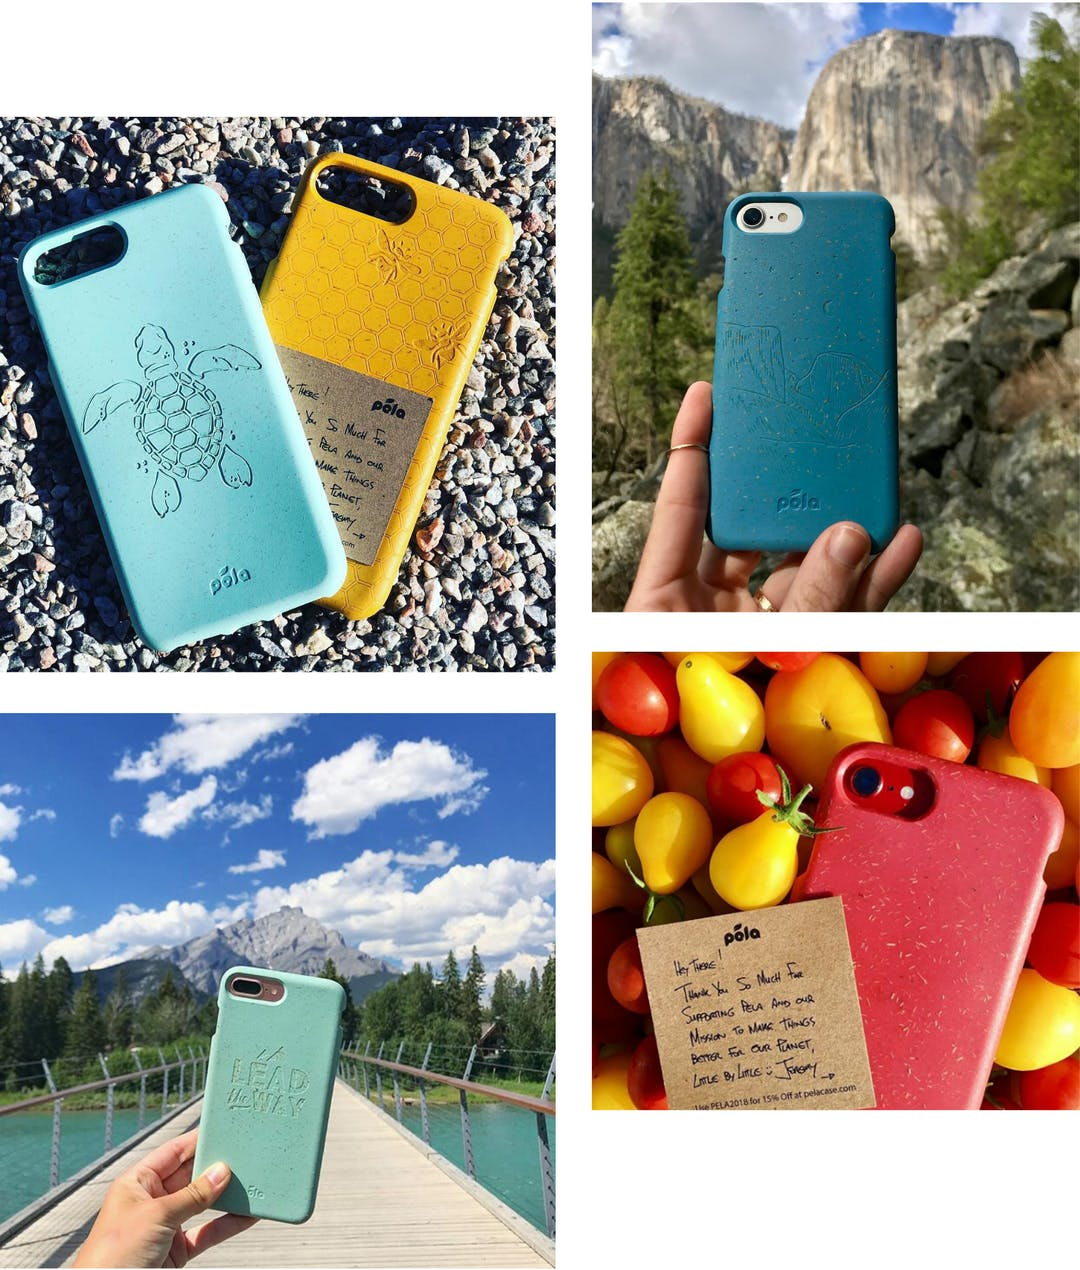 Grid of Pela biodegradable, eco-friendly phone cases